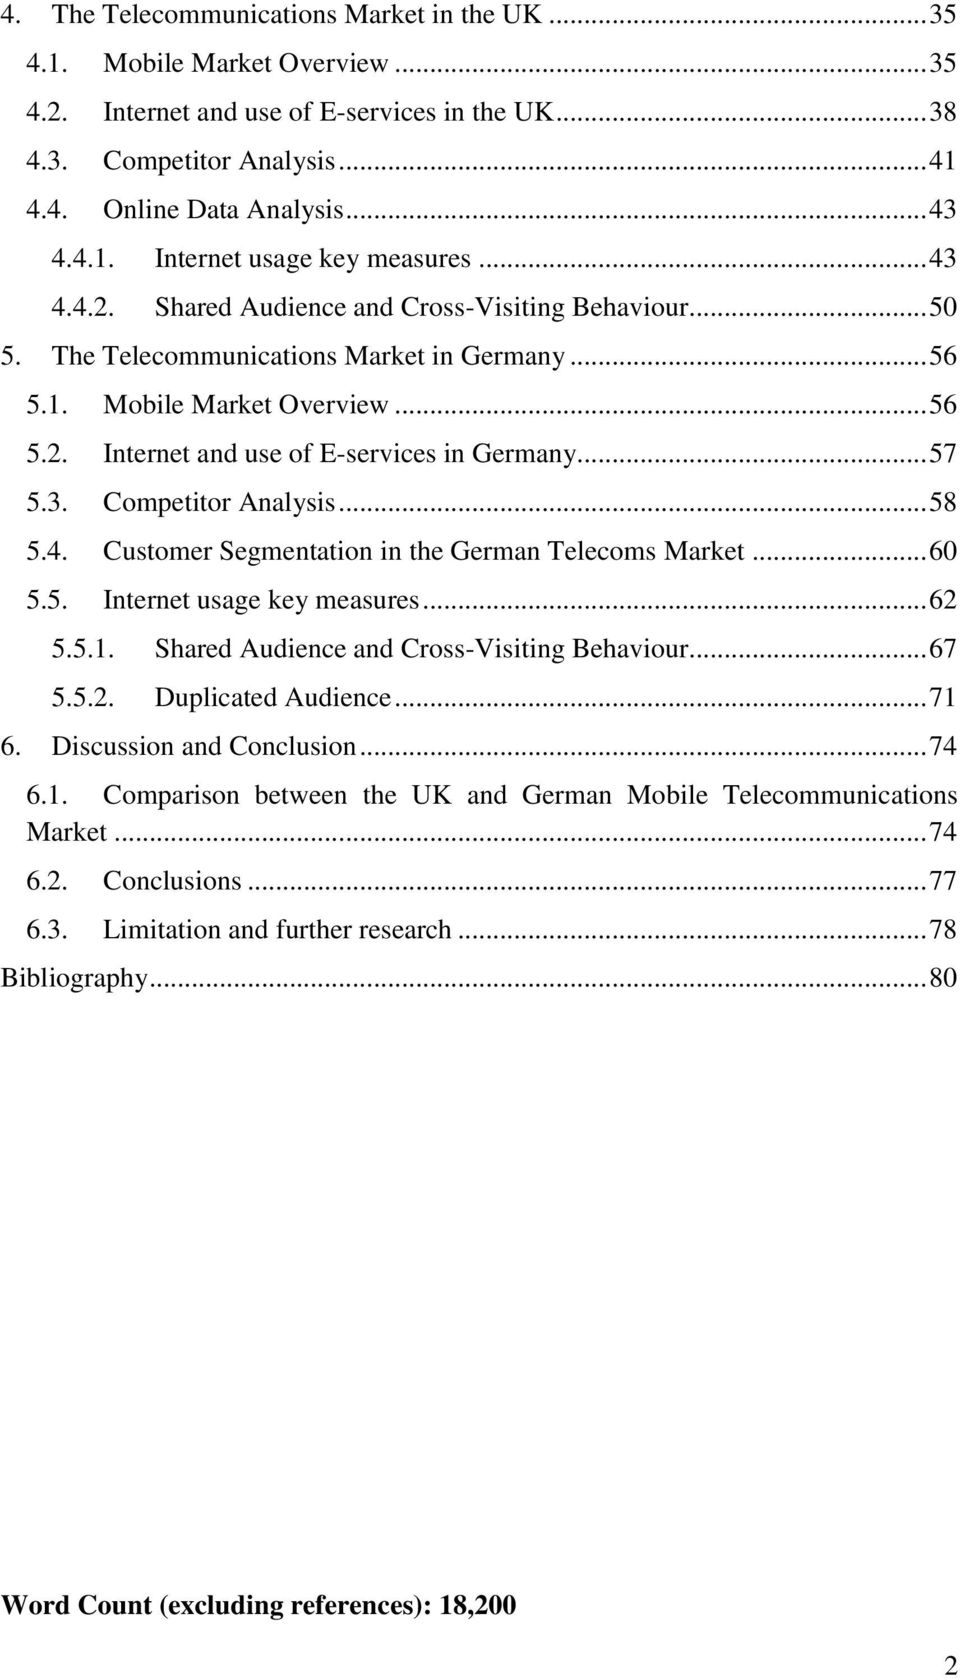 .. 57 5.3. Competitor Analysis... 58 5.4. Customer Segmentation in the German Telecoms Market... 60 5.5. Internet usage key measures... 62 5.5.1. Shared Audience and Cross-Visiting Behaviour... 67 5.